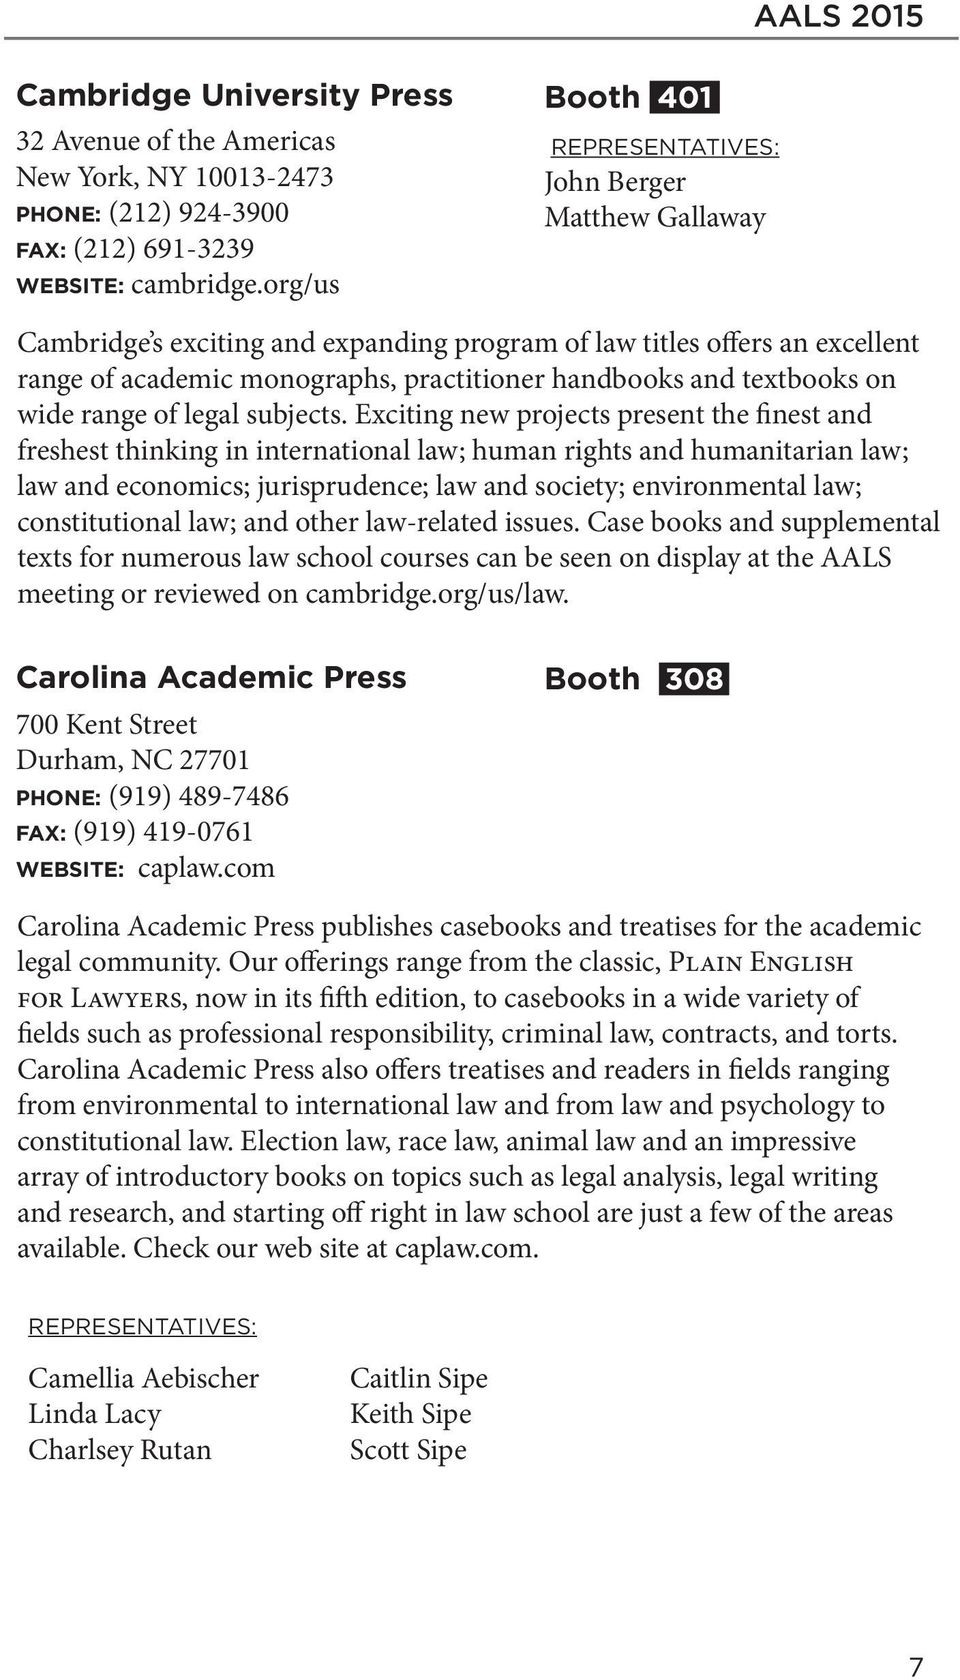 2015 Annual Meeting Exhibit Program Legal Education At The Lawschoolwestlawcom Most Comprehensive Web Site For Law School Subjects